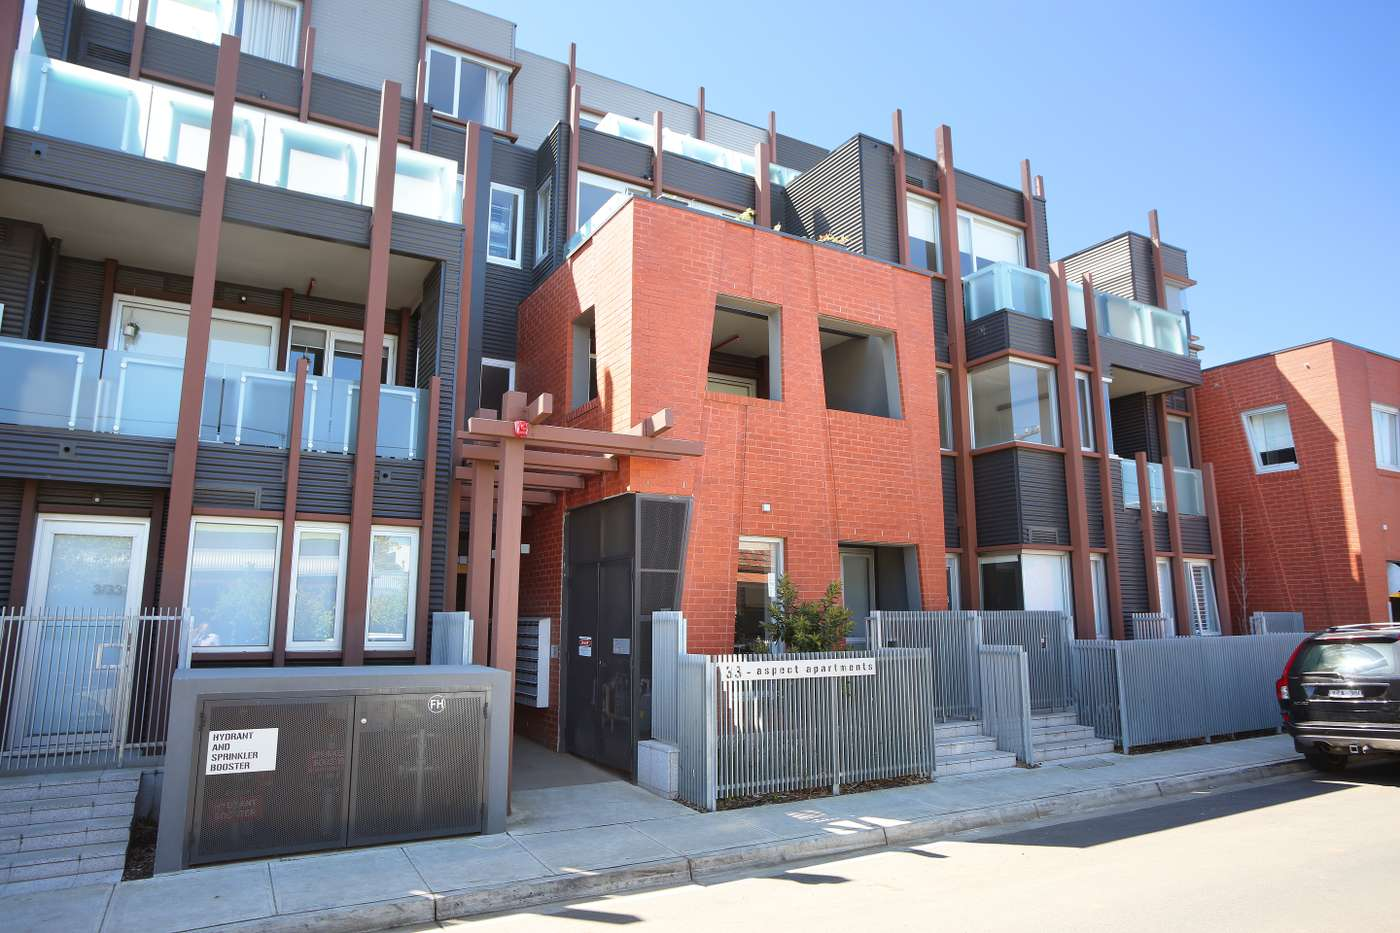 Main view of Homely apartment listing, 103/33 James Street, Windsor, VIC 3181